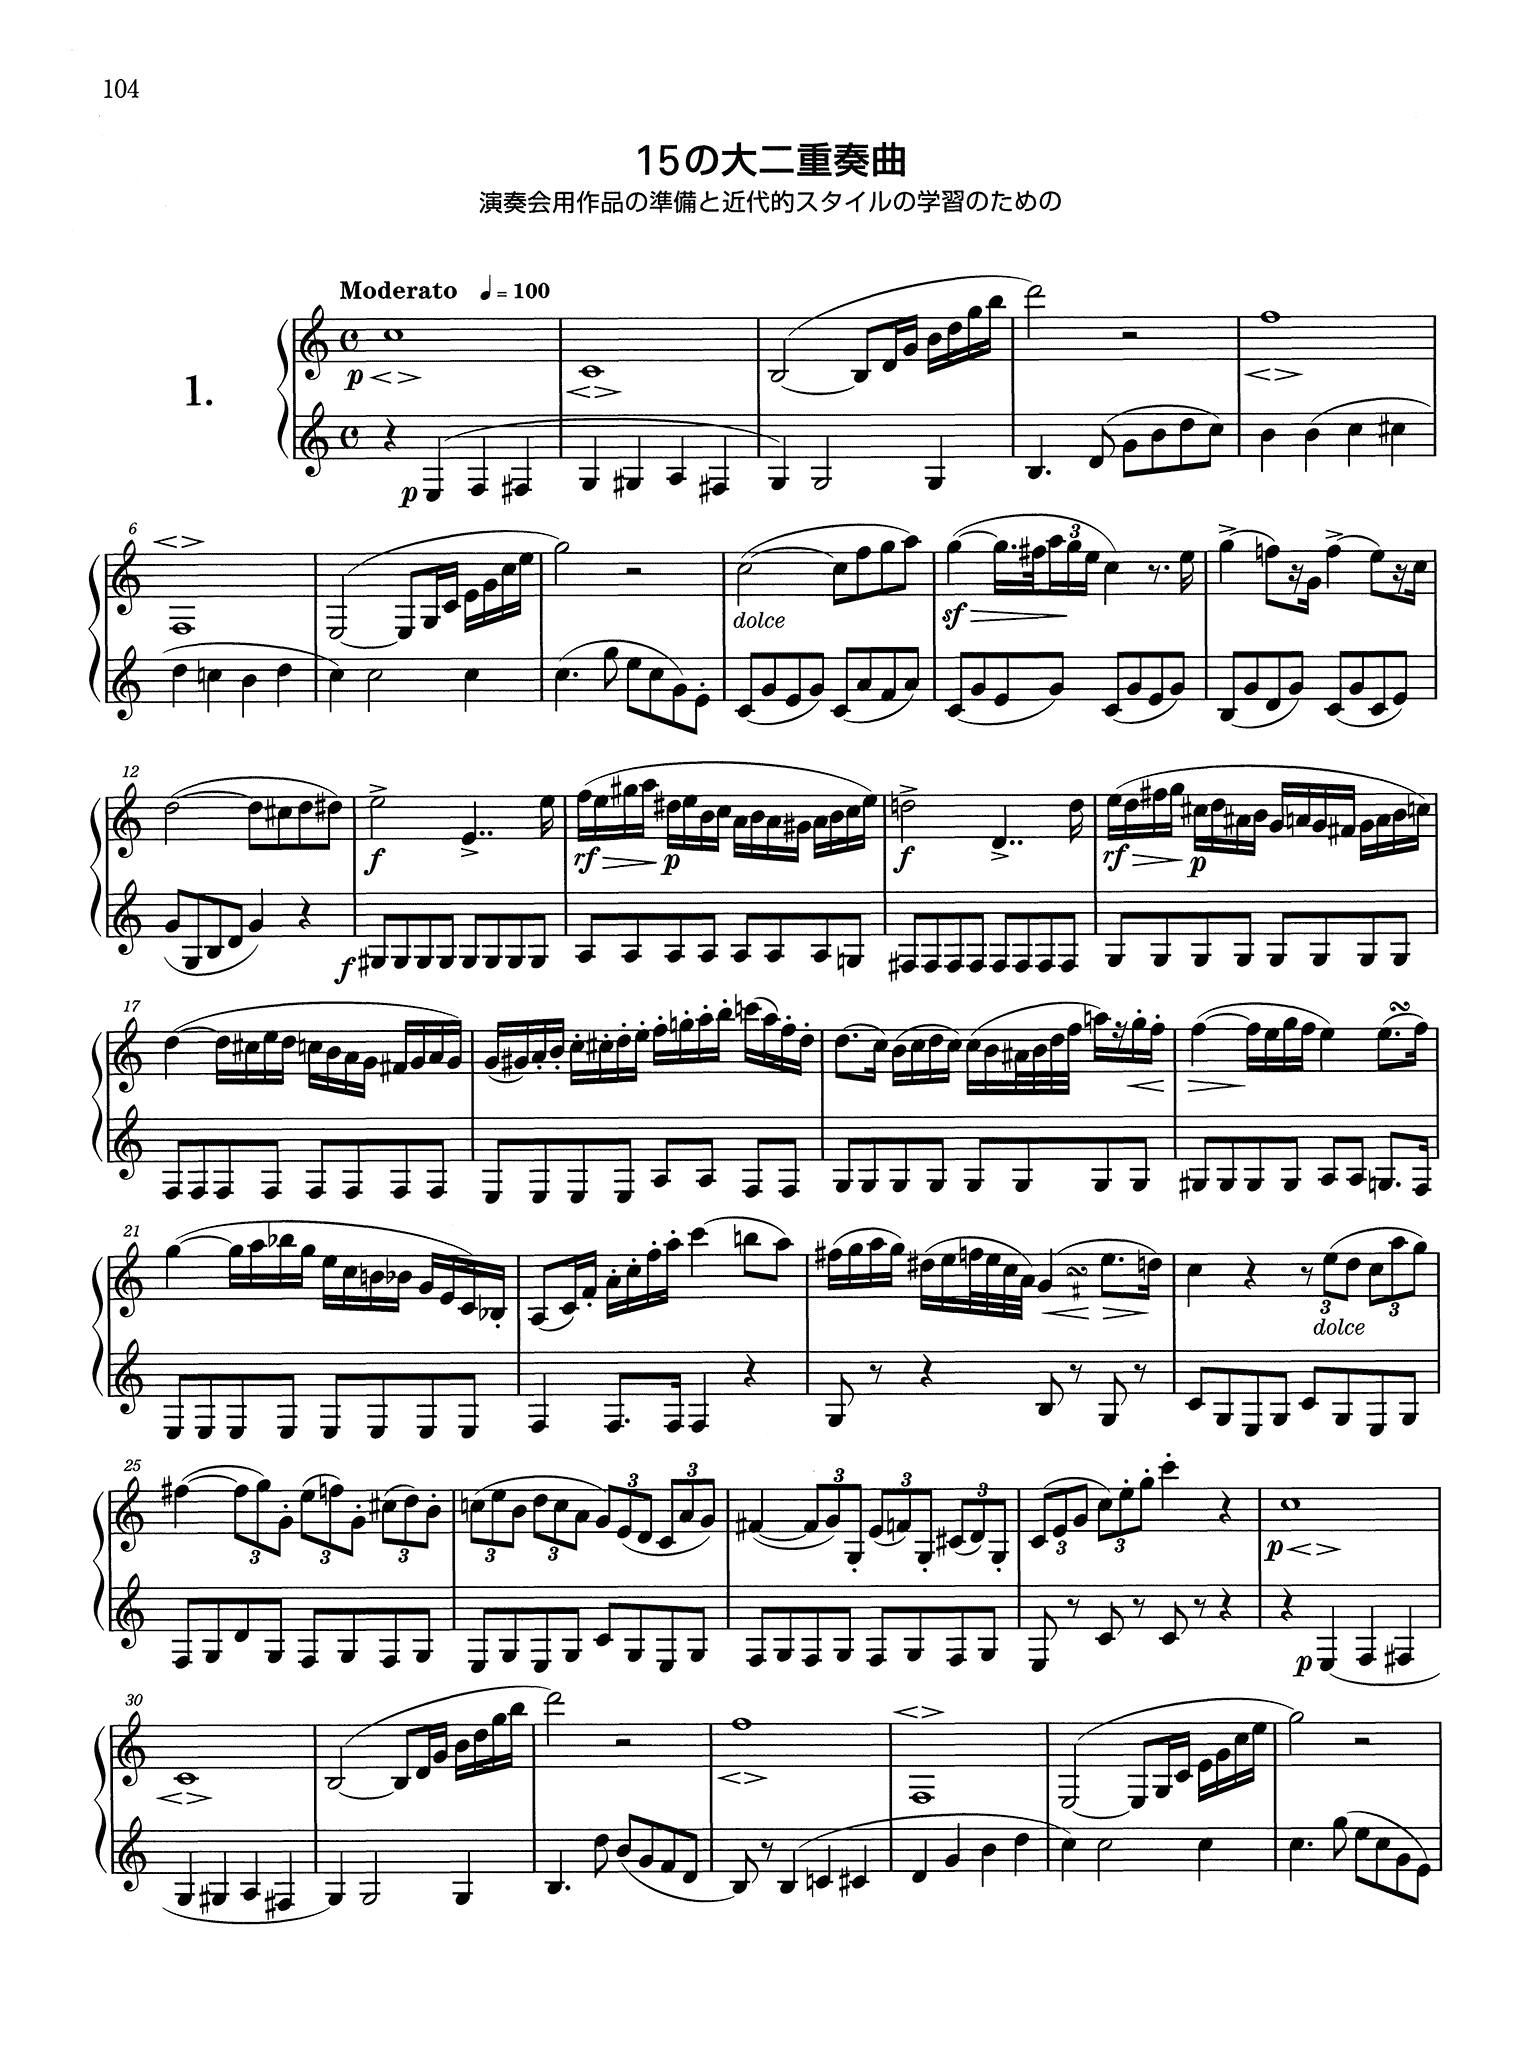 Klosé Complete Clarinet Method Page 104